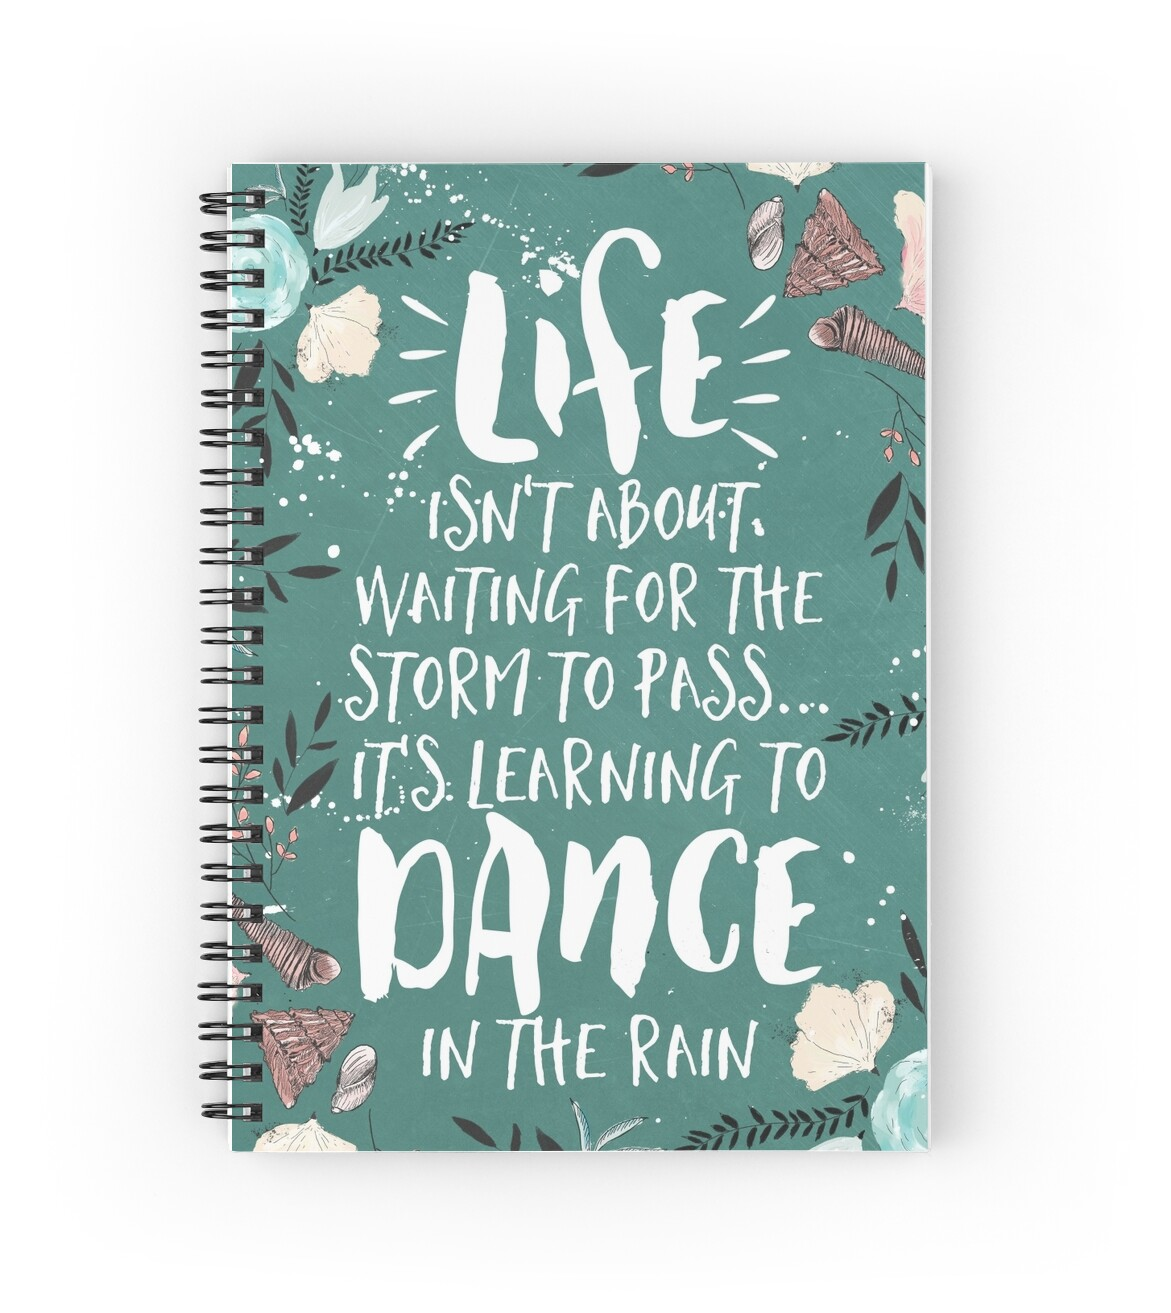 Quot Life Isn T About Waiting For The Storm To Pass It S Learning To Dance In The Rain Quot Spiral